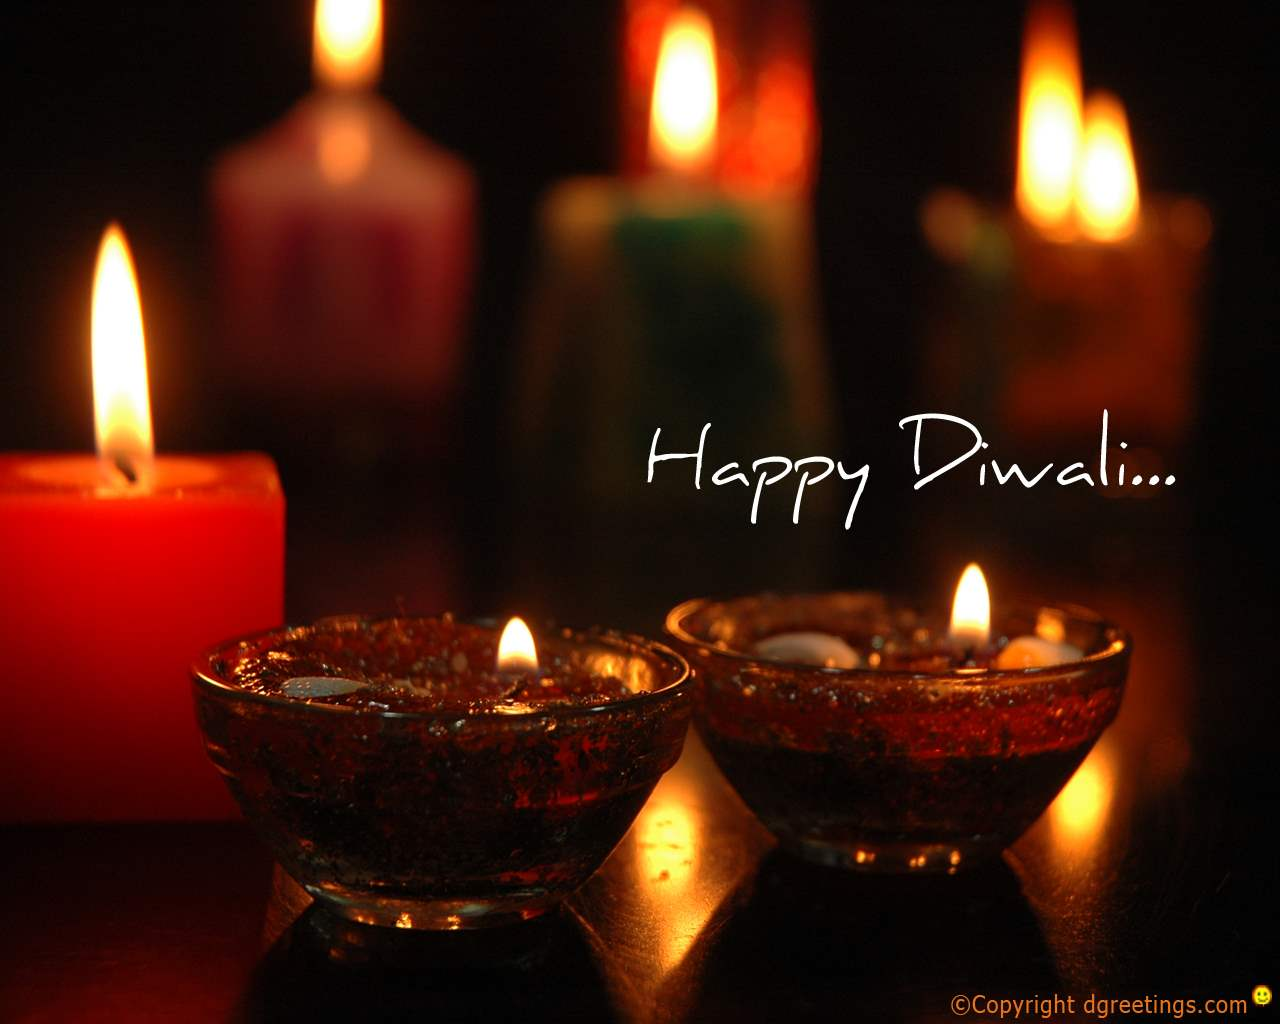 Full hd diwali wallpapers and greeting cards page 3 happy diwali wallpapers images 2015 designsmag 16 m4hsunfo Images